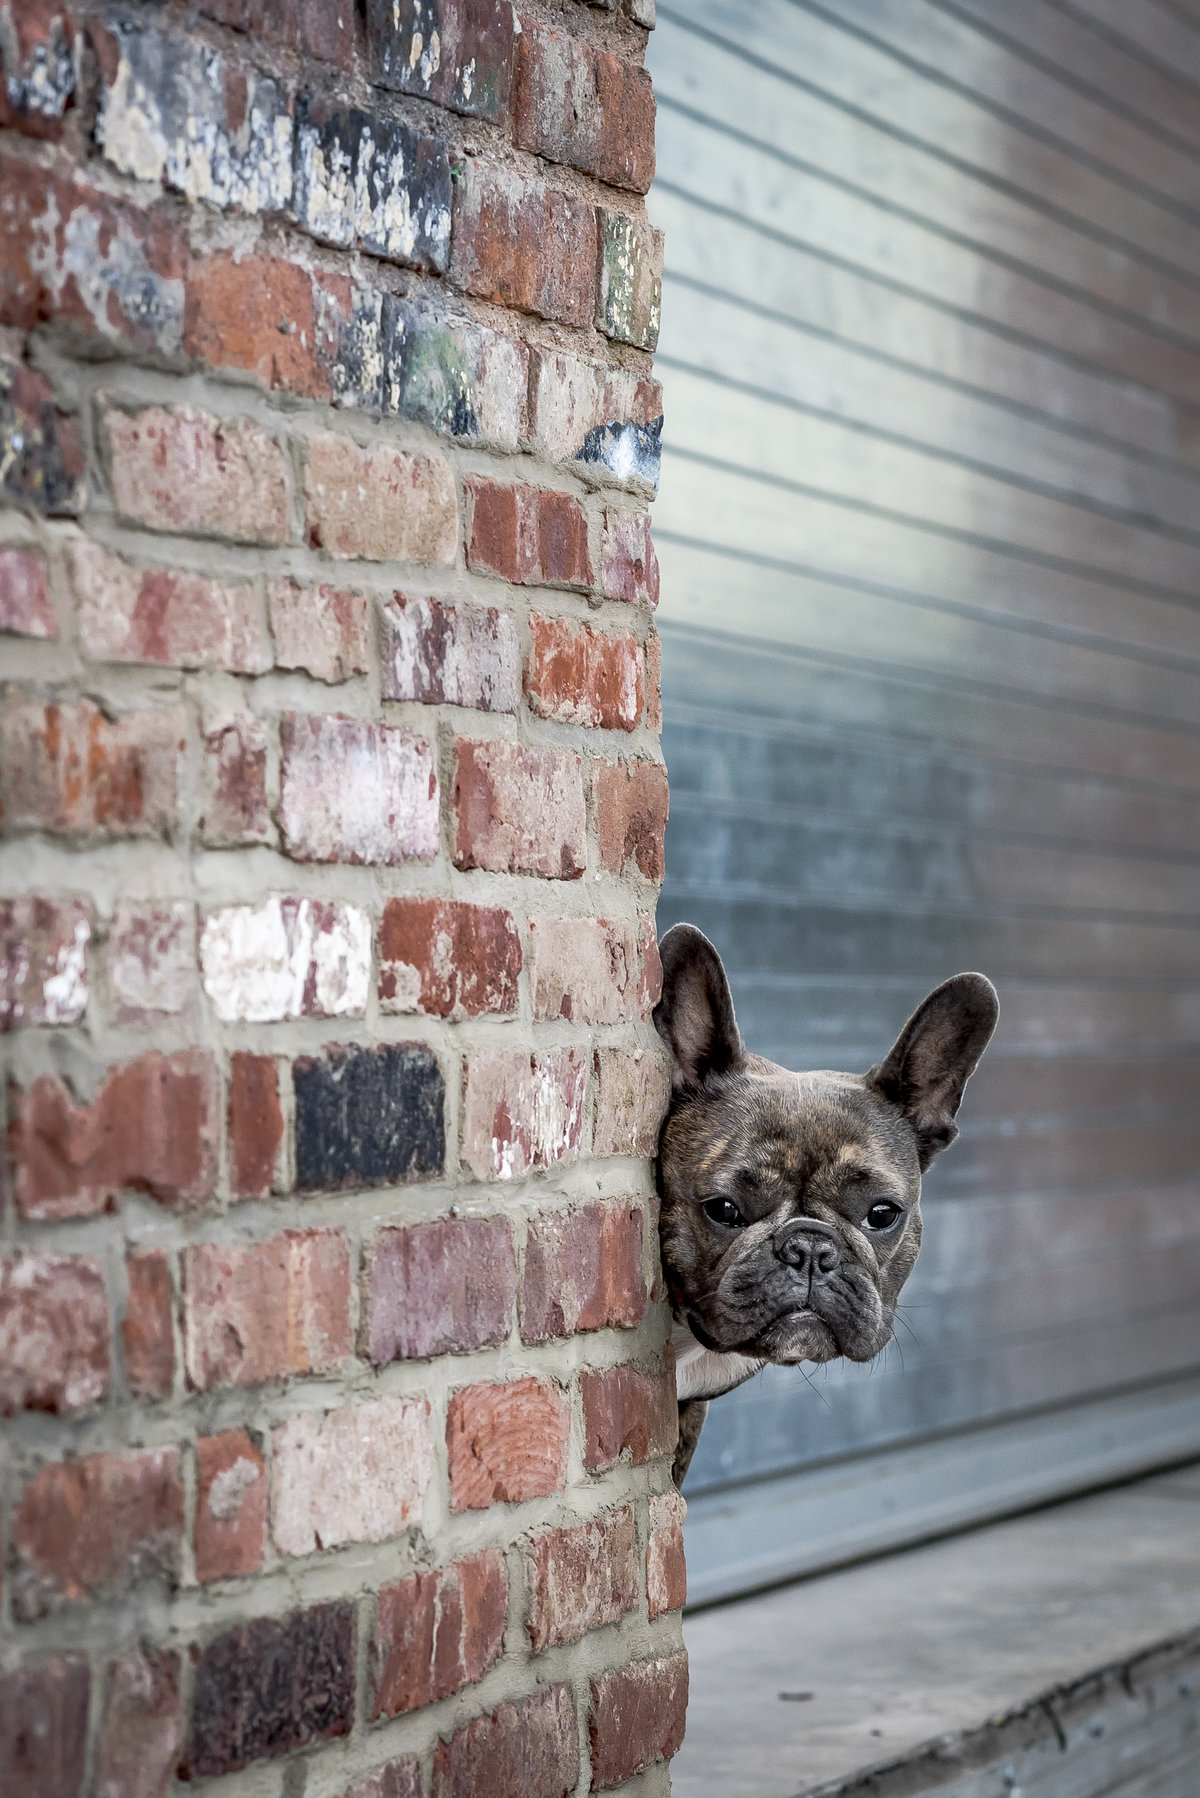 Fremch Bulldog peering from behind a brick wall